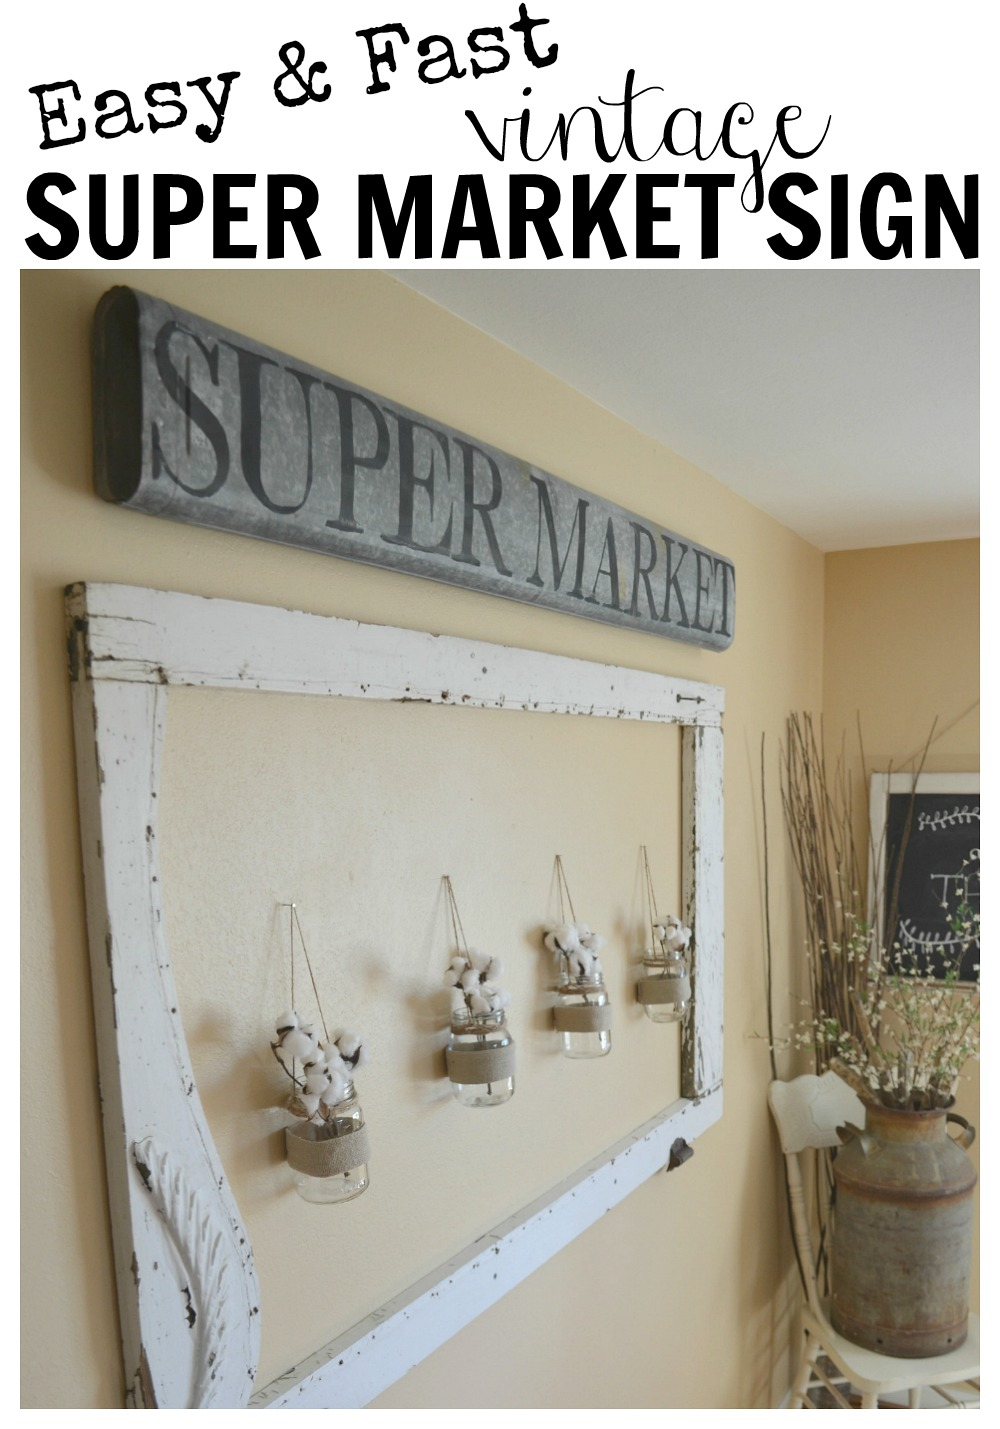 Easy & Fast Vintage Super Market Sign